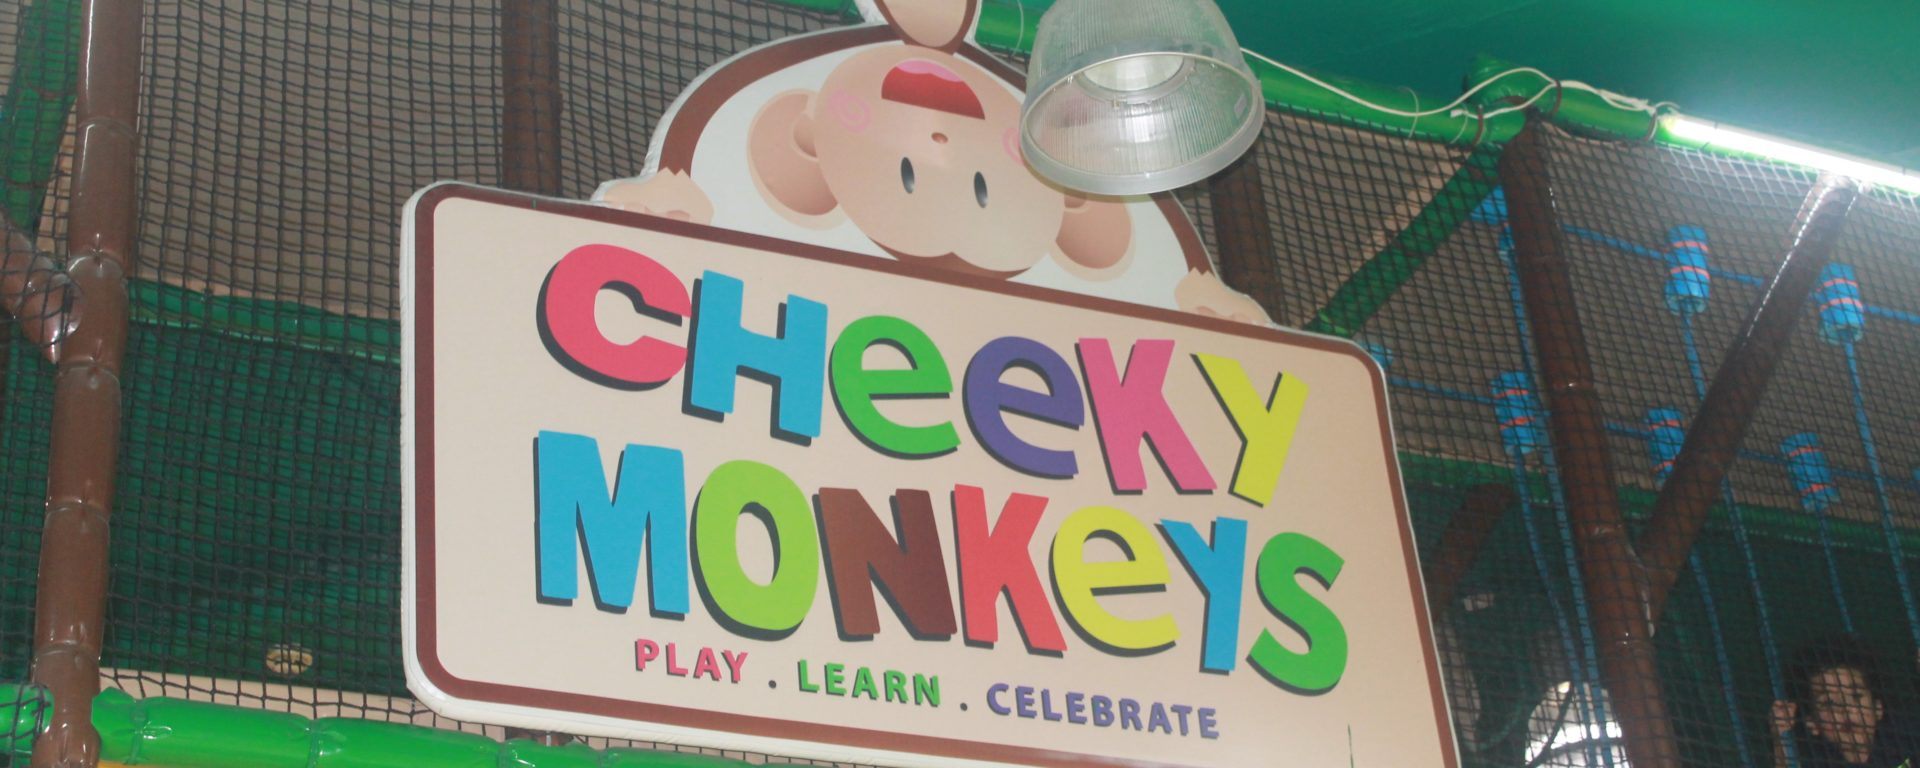 Cheeky Monkeys is one of those places that we visited as it has several branches across the city and it has won the award of the Best Soft Play Venue in 2015. So we came to explore it together! The area is divided in two, allowing toddlers to play safely away from the older kids, and their area is just huge!